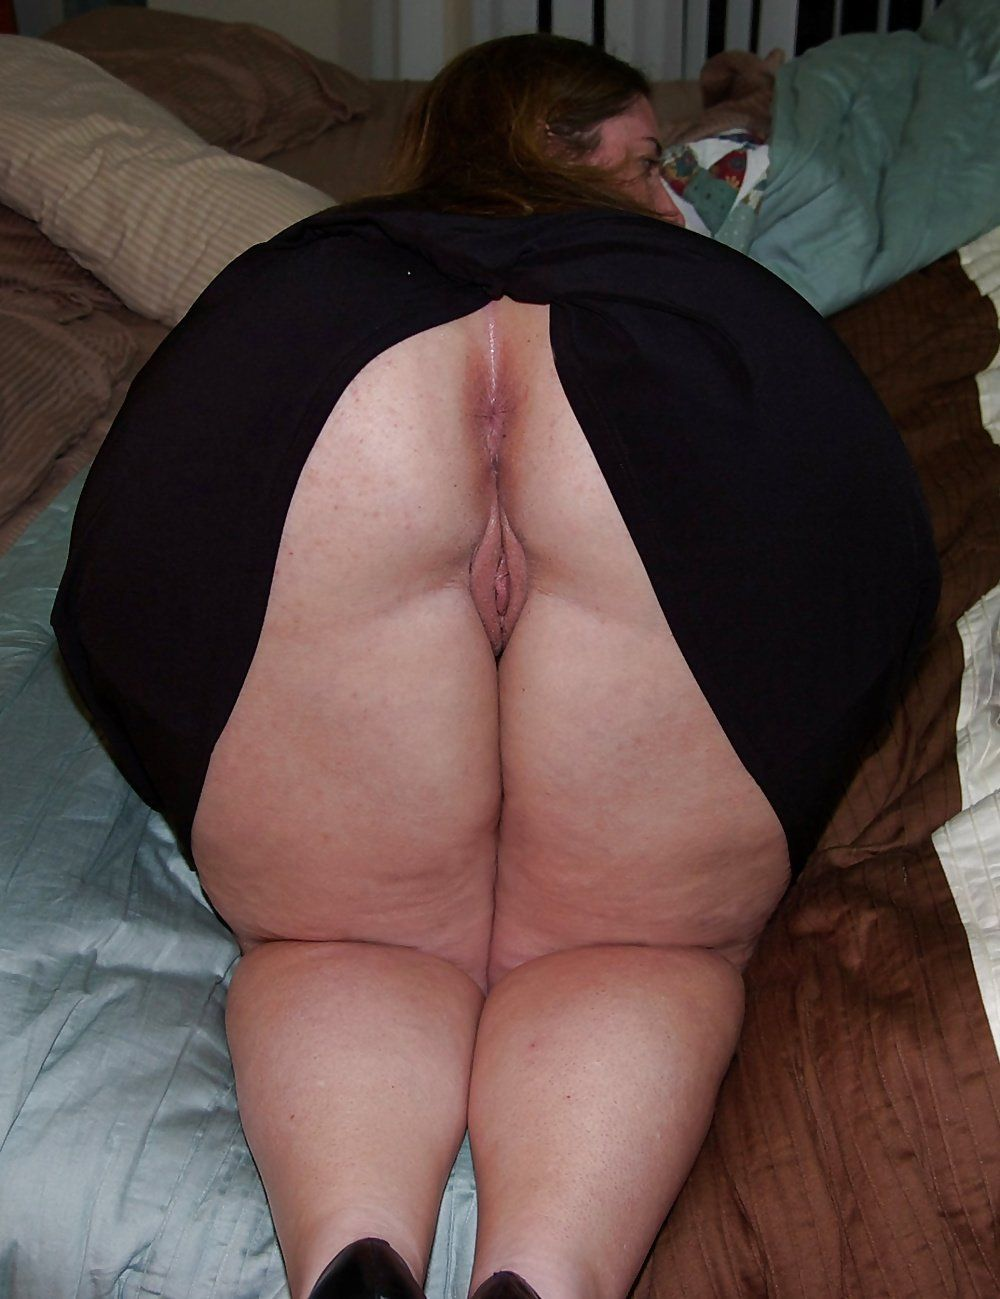 Bbw spread huge asshole